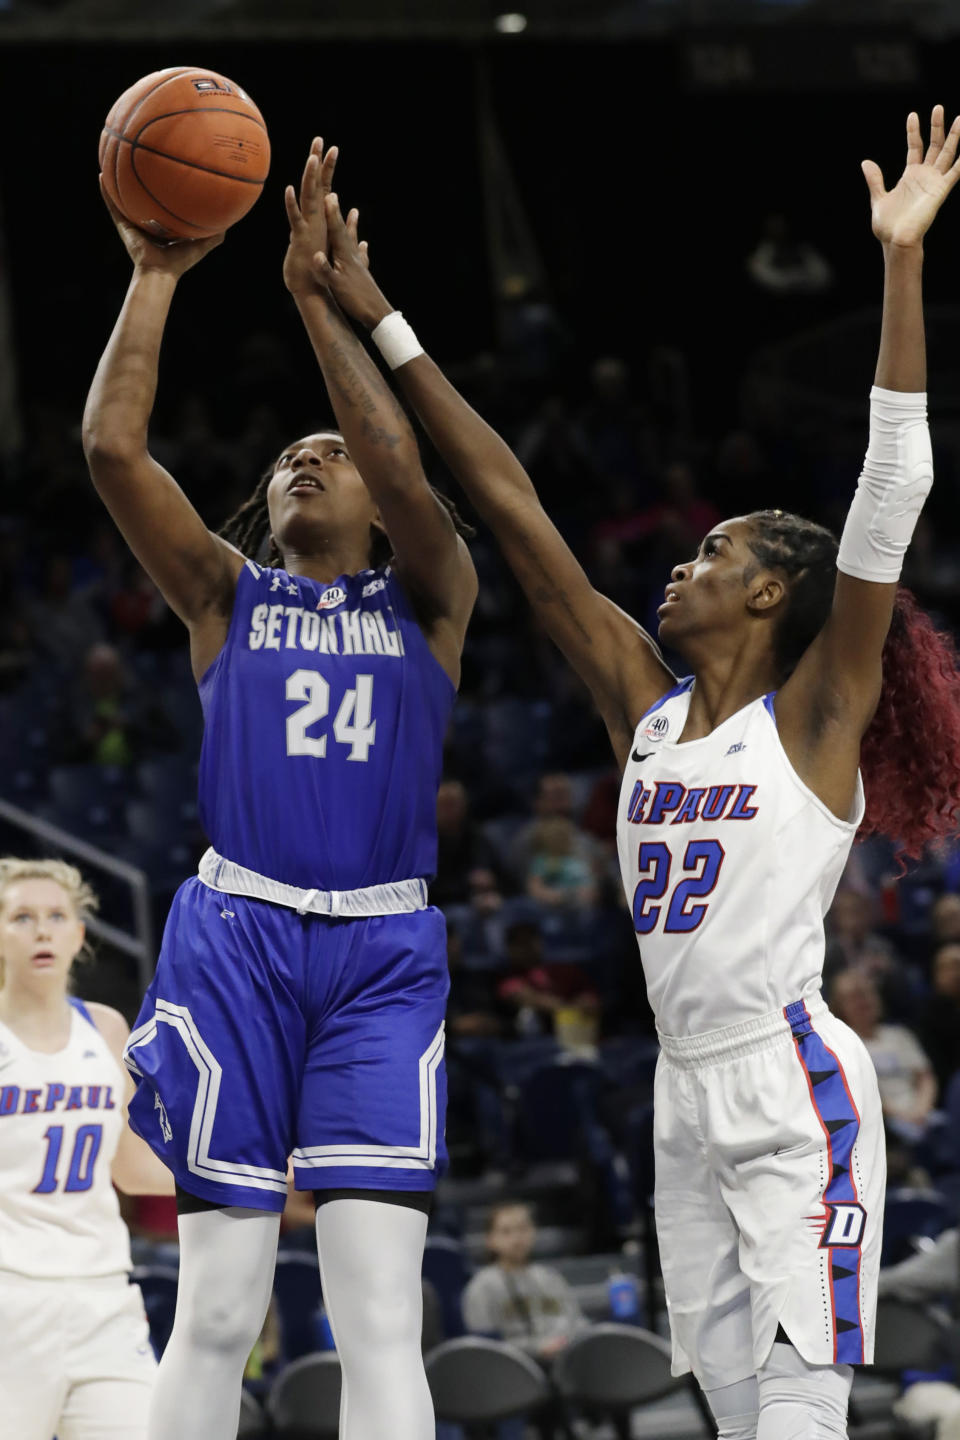 Seton Hall forward Shadeen Samuels, left, shoots against DePaul forward Chante Stonewall during the second half of an NCAA college basketball game in the Big East women's tournament semifinals, Sunday, March 8, 2020, in Chicago. (AP Photo/Nam Y. Huh)